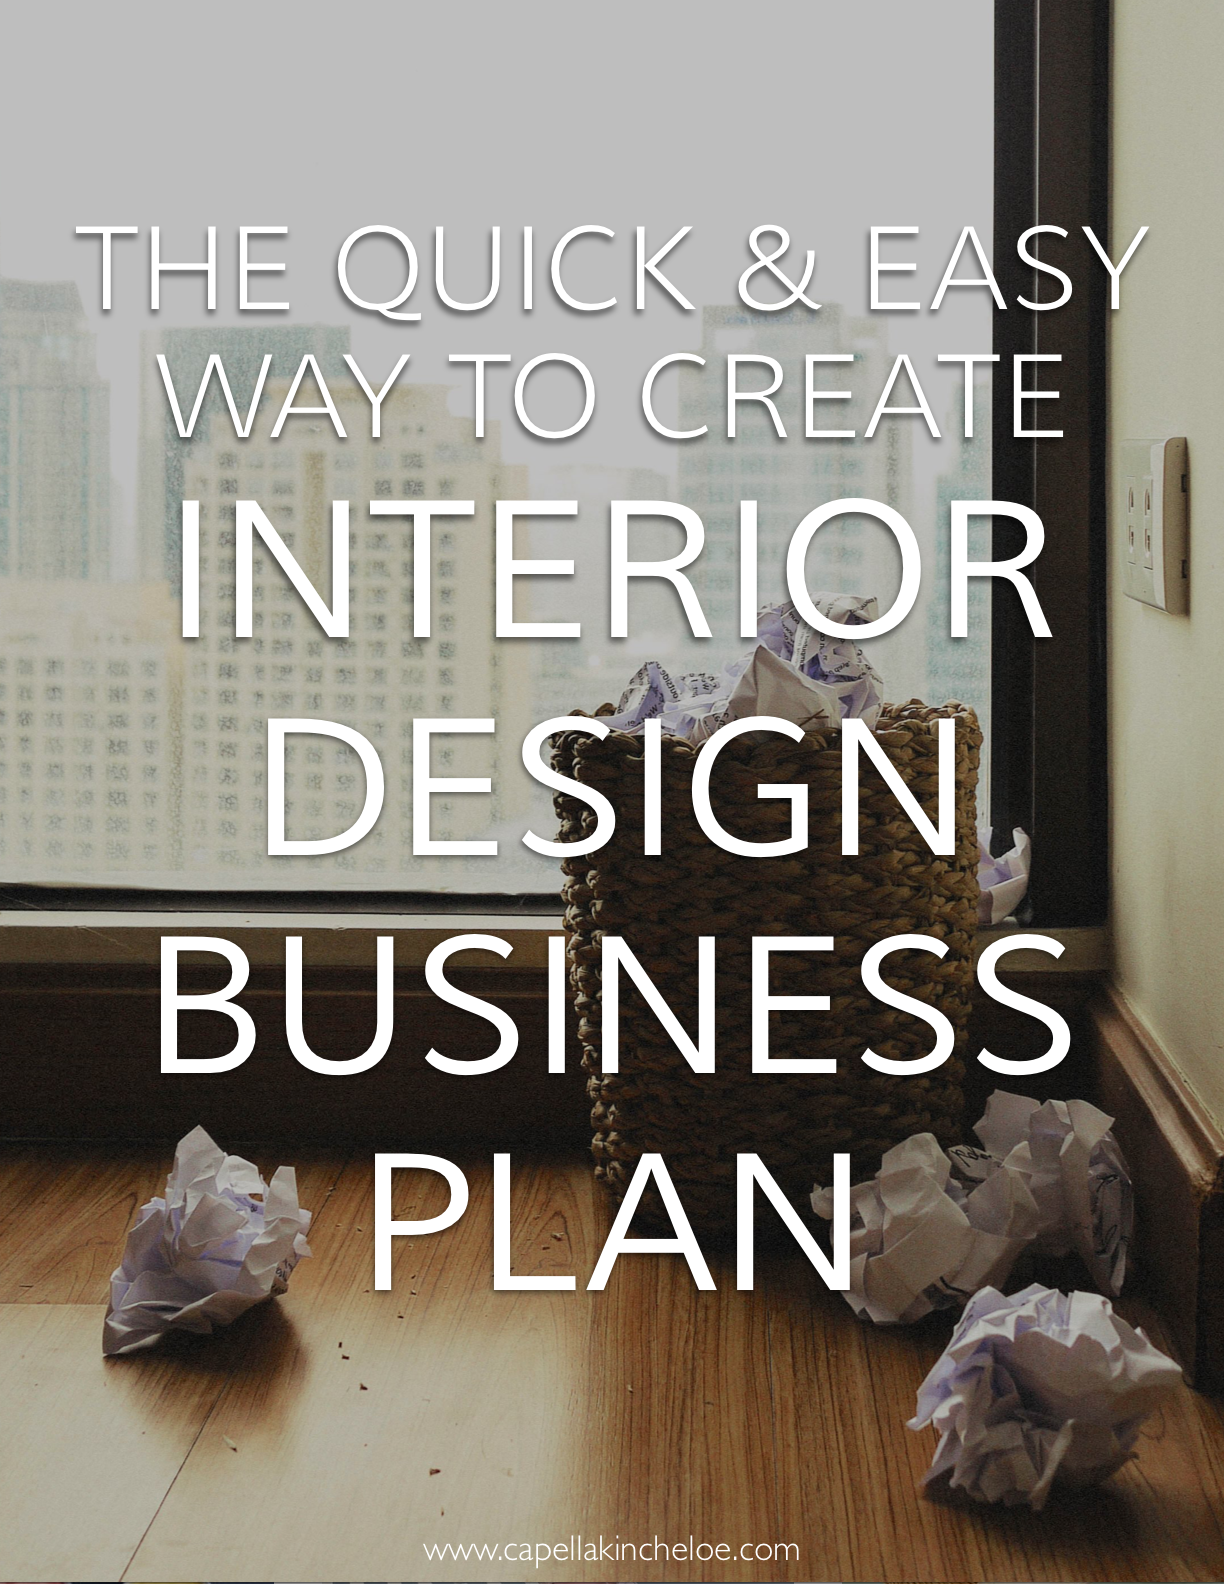 Interior Decoration Business Plan Simple Business Plans For Interior Designers Could Be